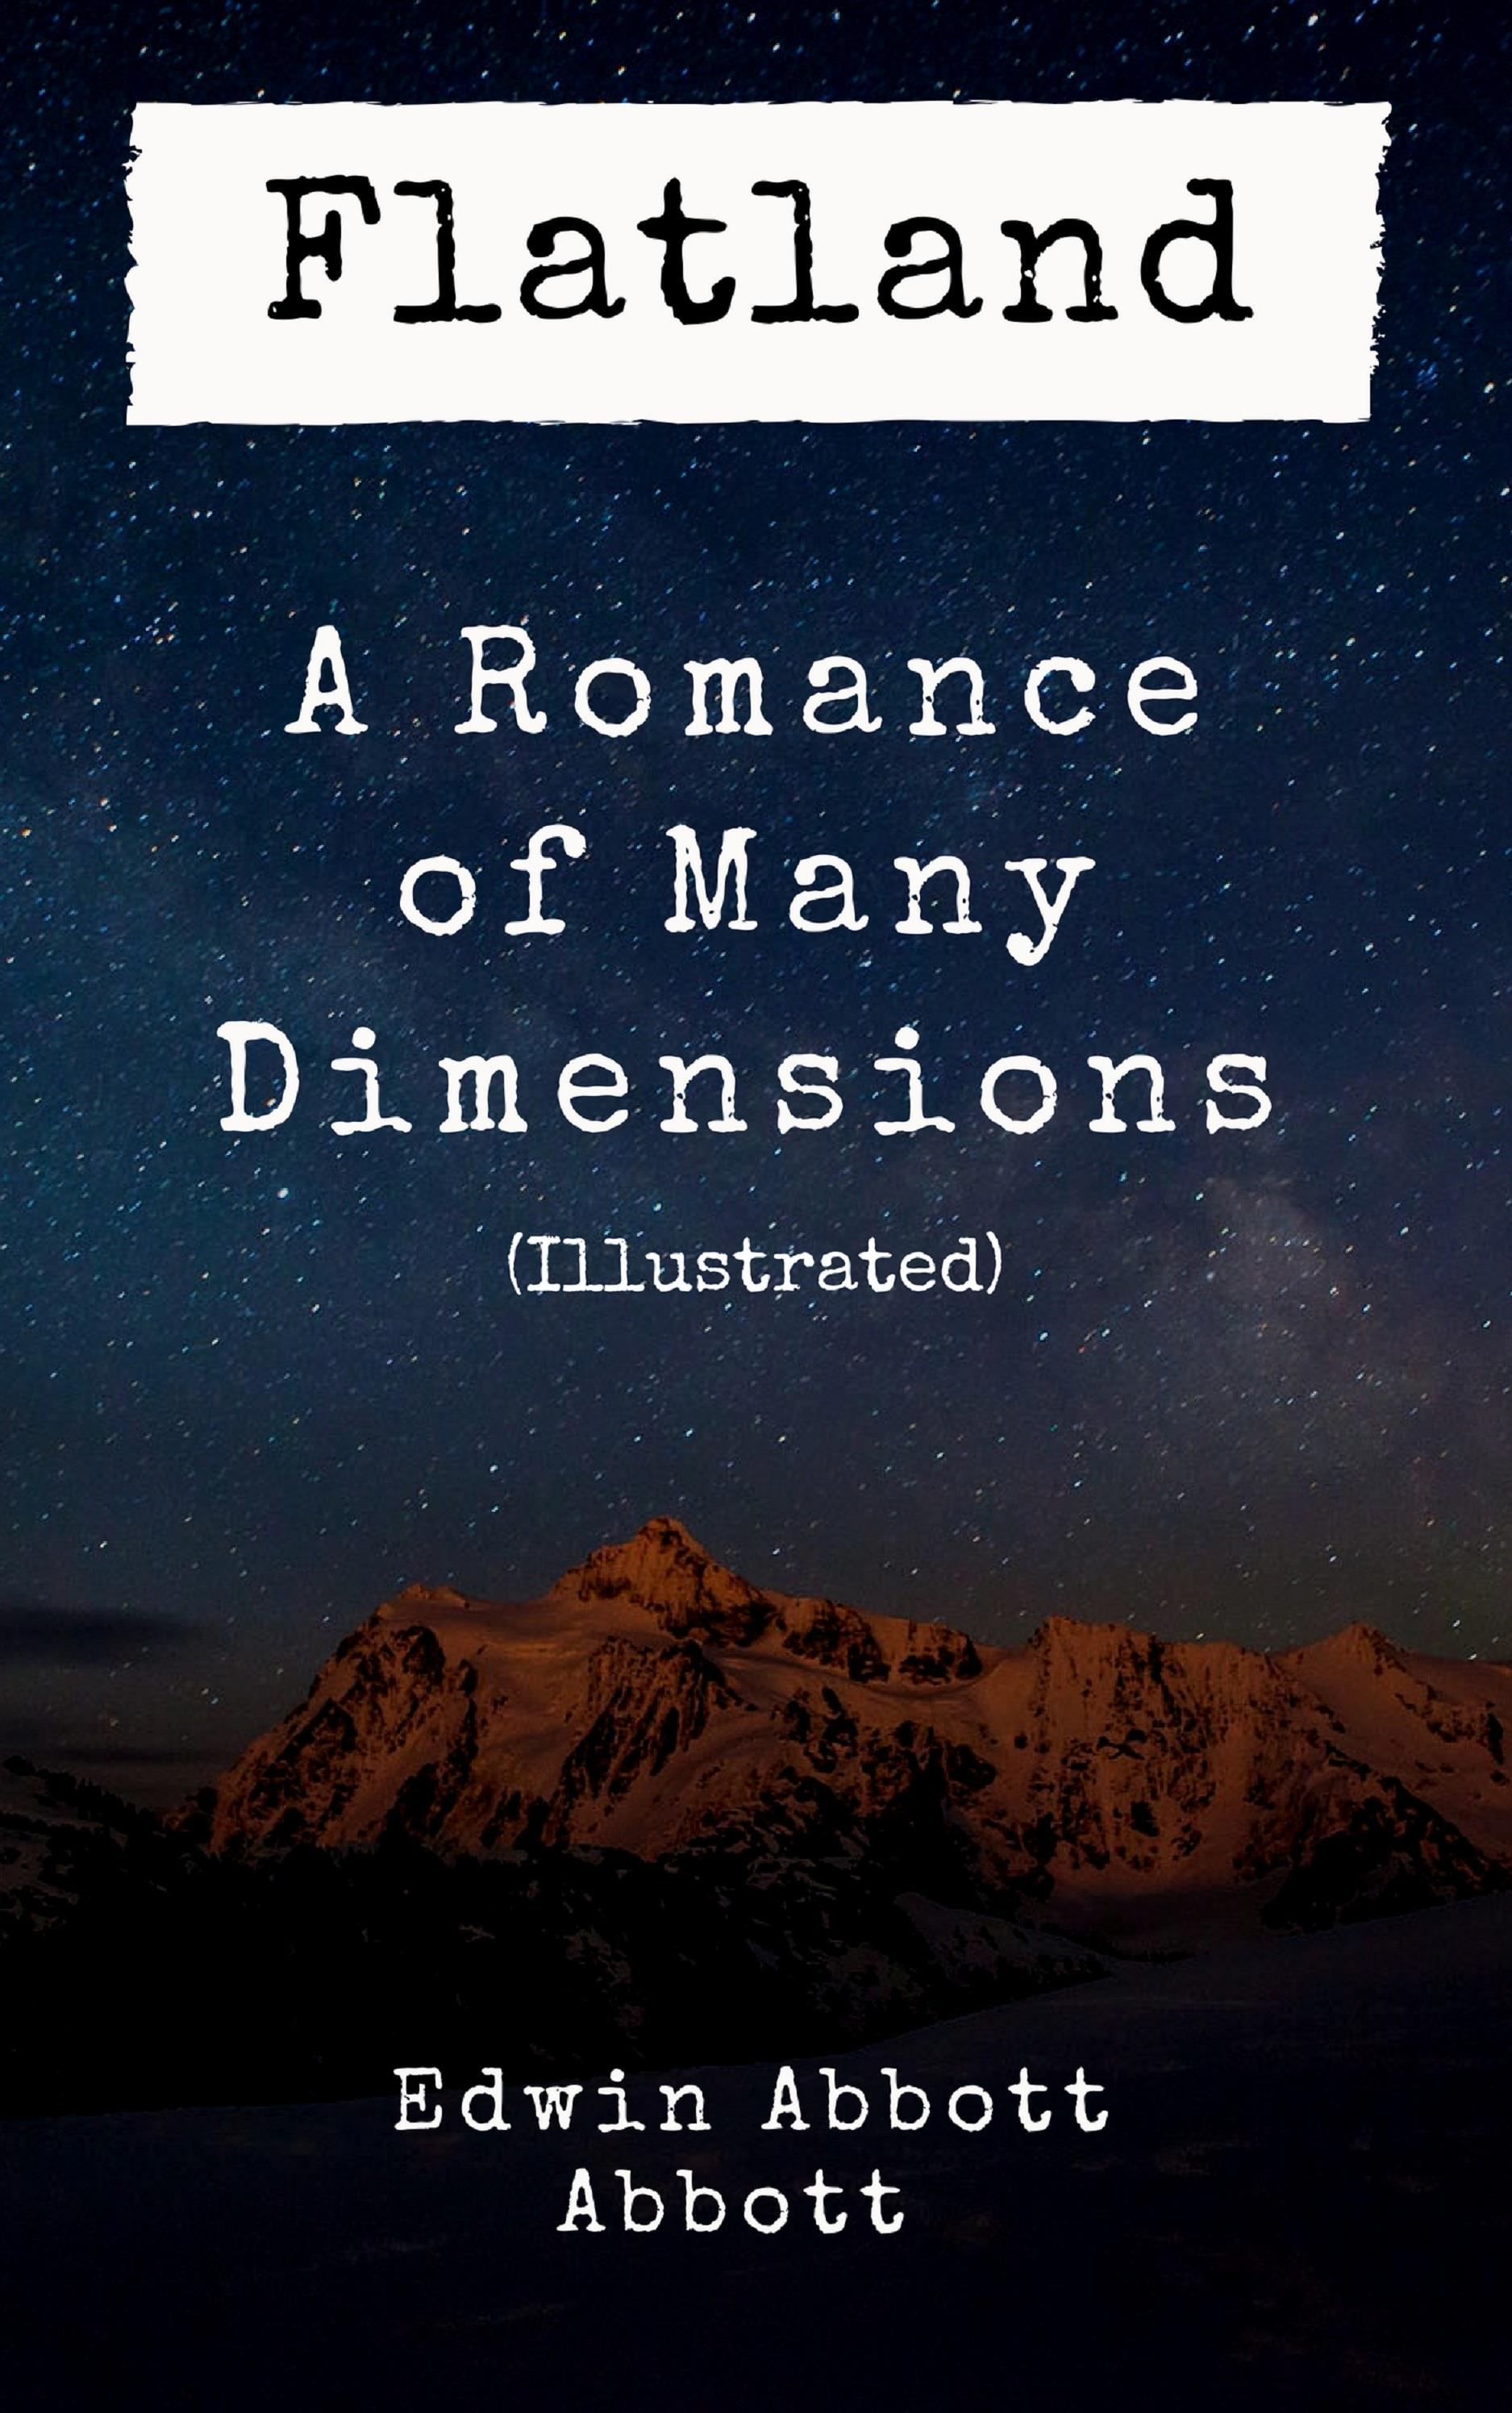 Flatland: A Romance of Many Dimensions (Illustrated)